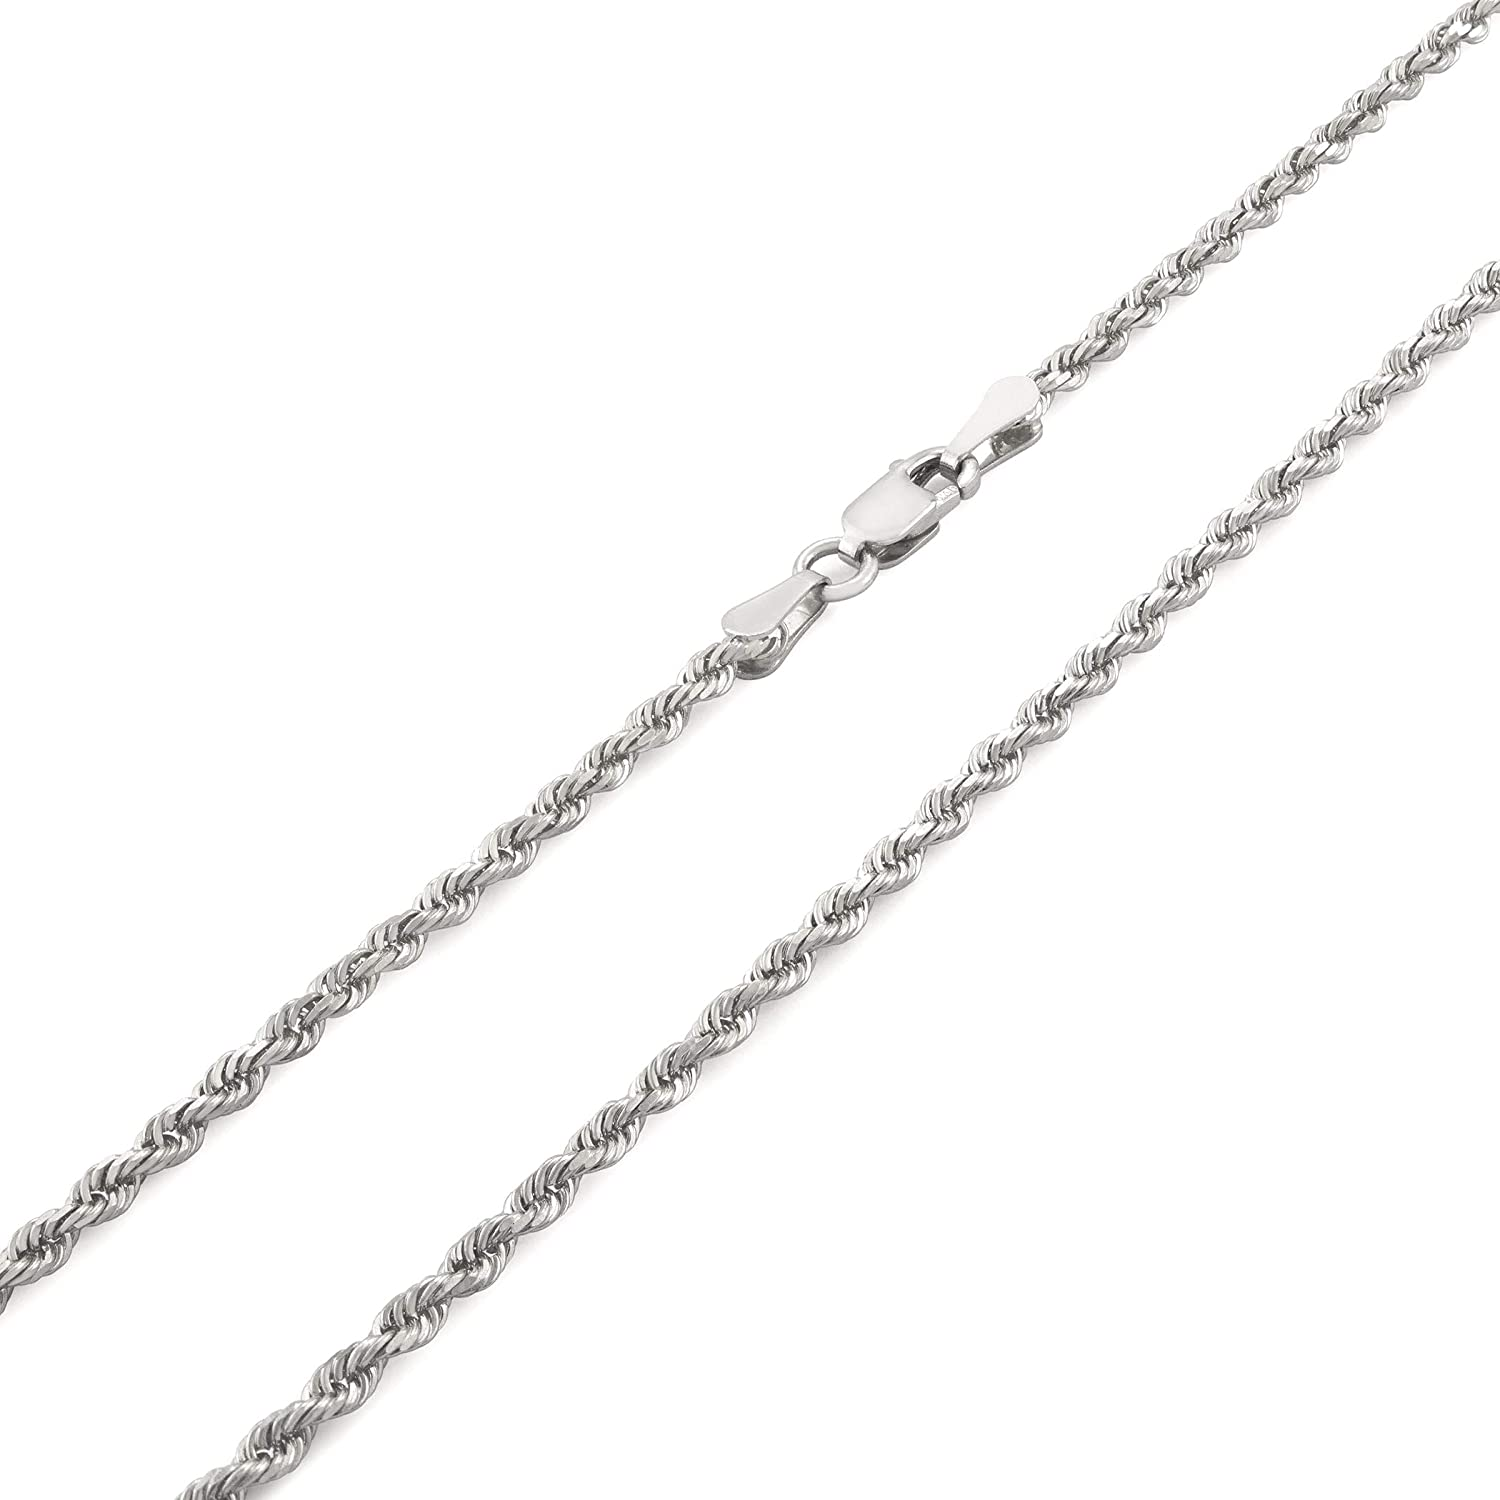 Nuragold 10k White Gold 2mm Rope Chain Diamond Cut Pendant Necklace, Mens Womens Lobster Lock 16